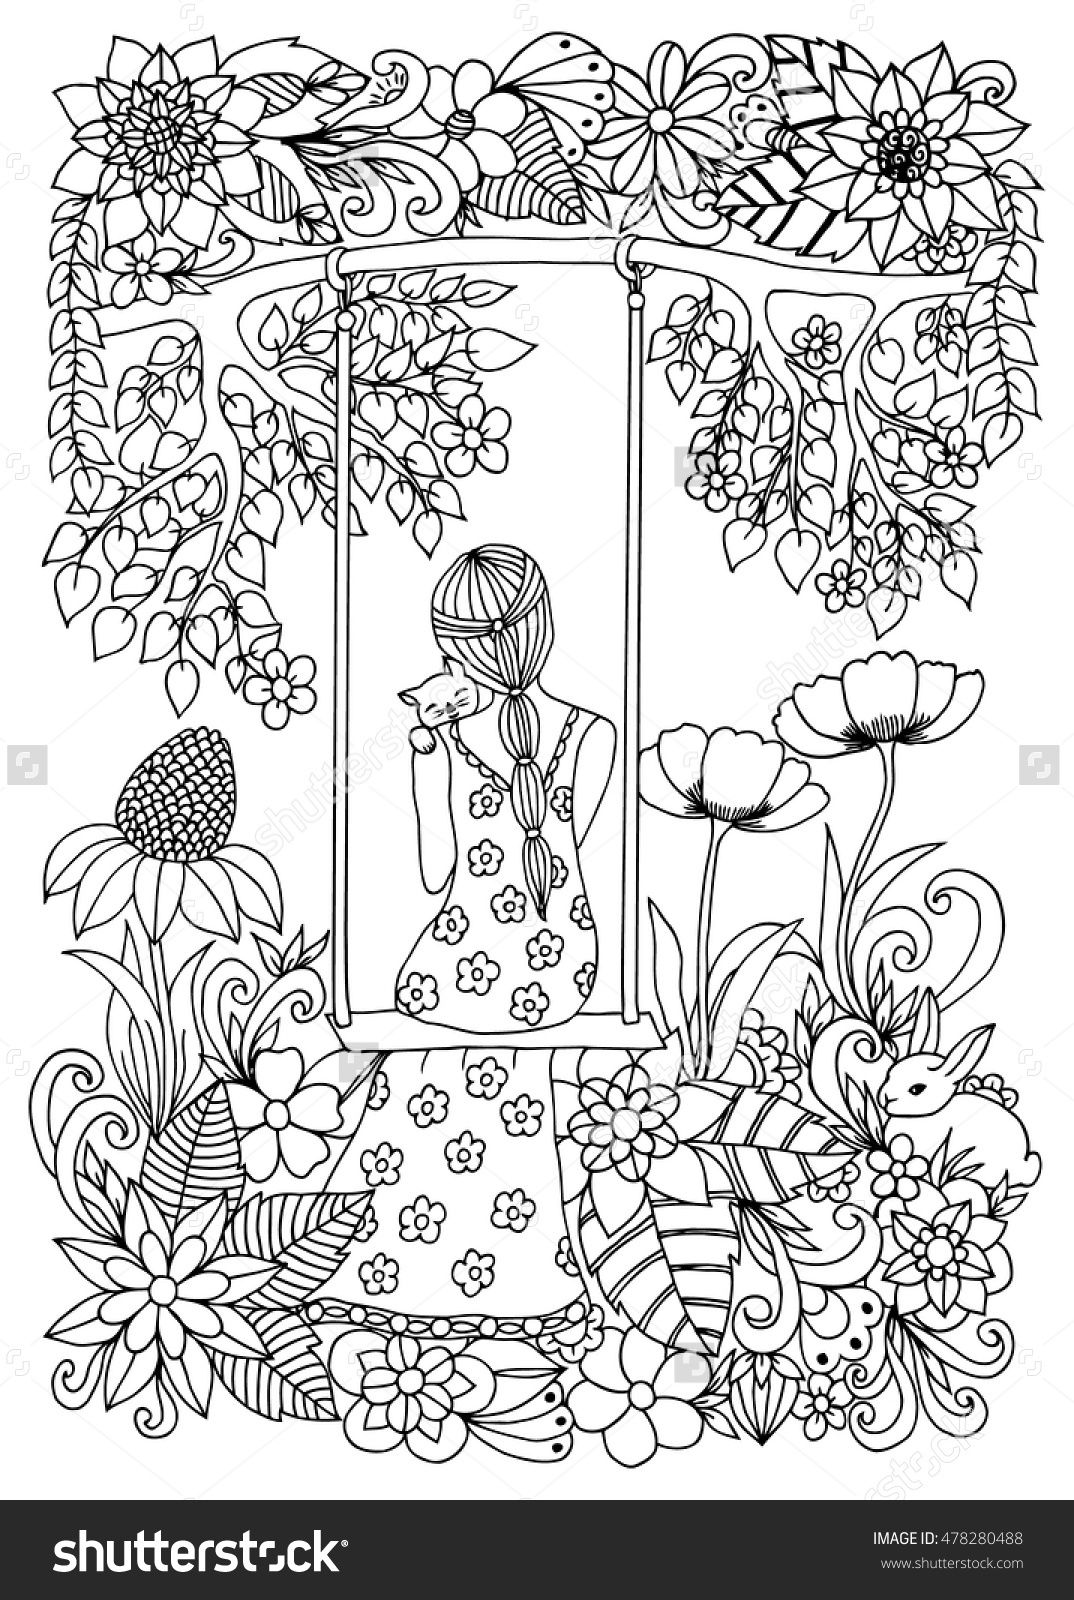 Coloring pages for adults zentangle - Vector Illustration Zen Tangle Girl With A Kitten On A Swing Dudling Coloring Book Adult Coloring Pagescoloring